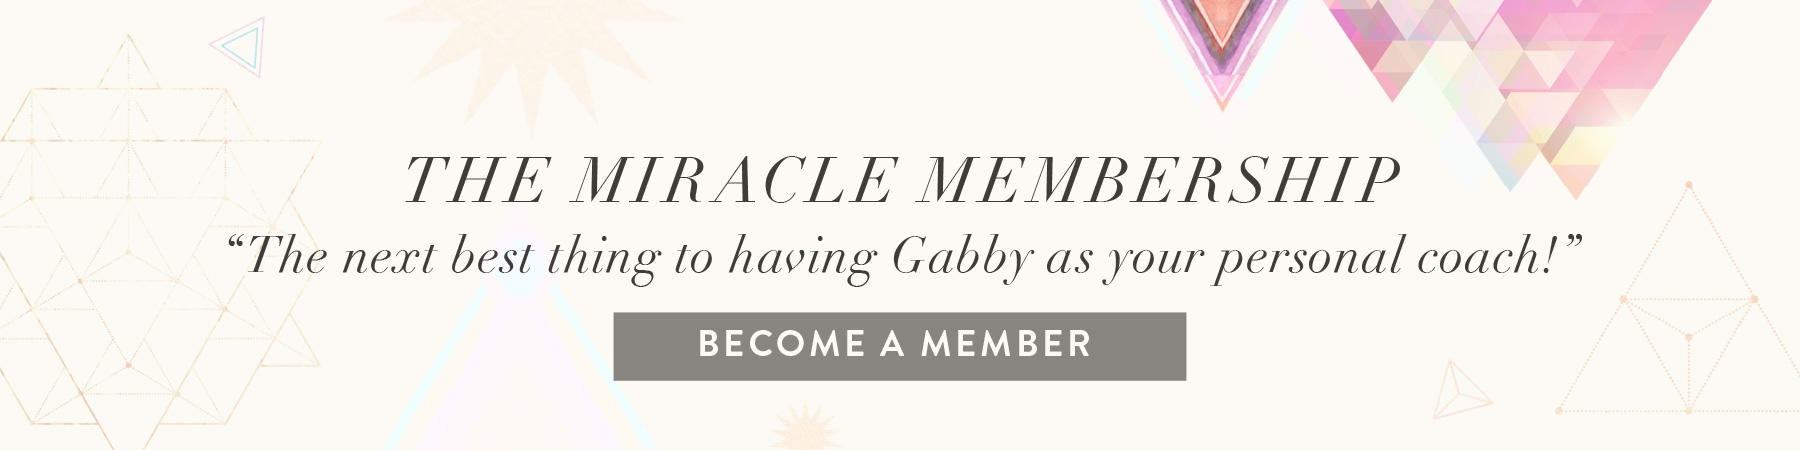 "Miracle Membership by Gabby Bernstein: ""The next best thing to having Gabby as your personal coach!"""